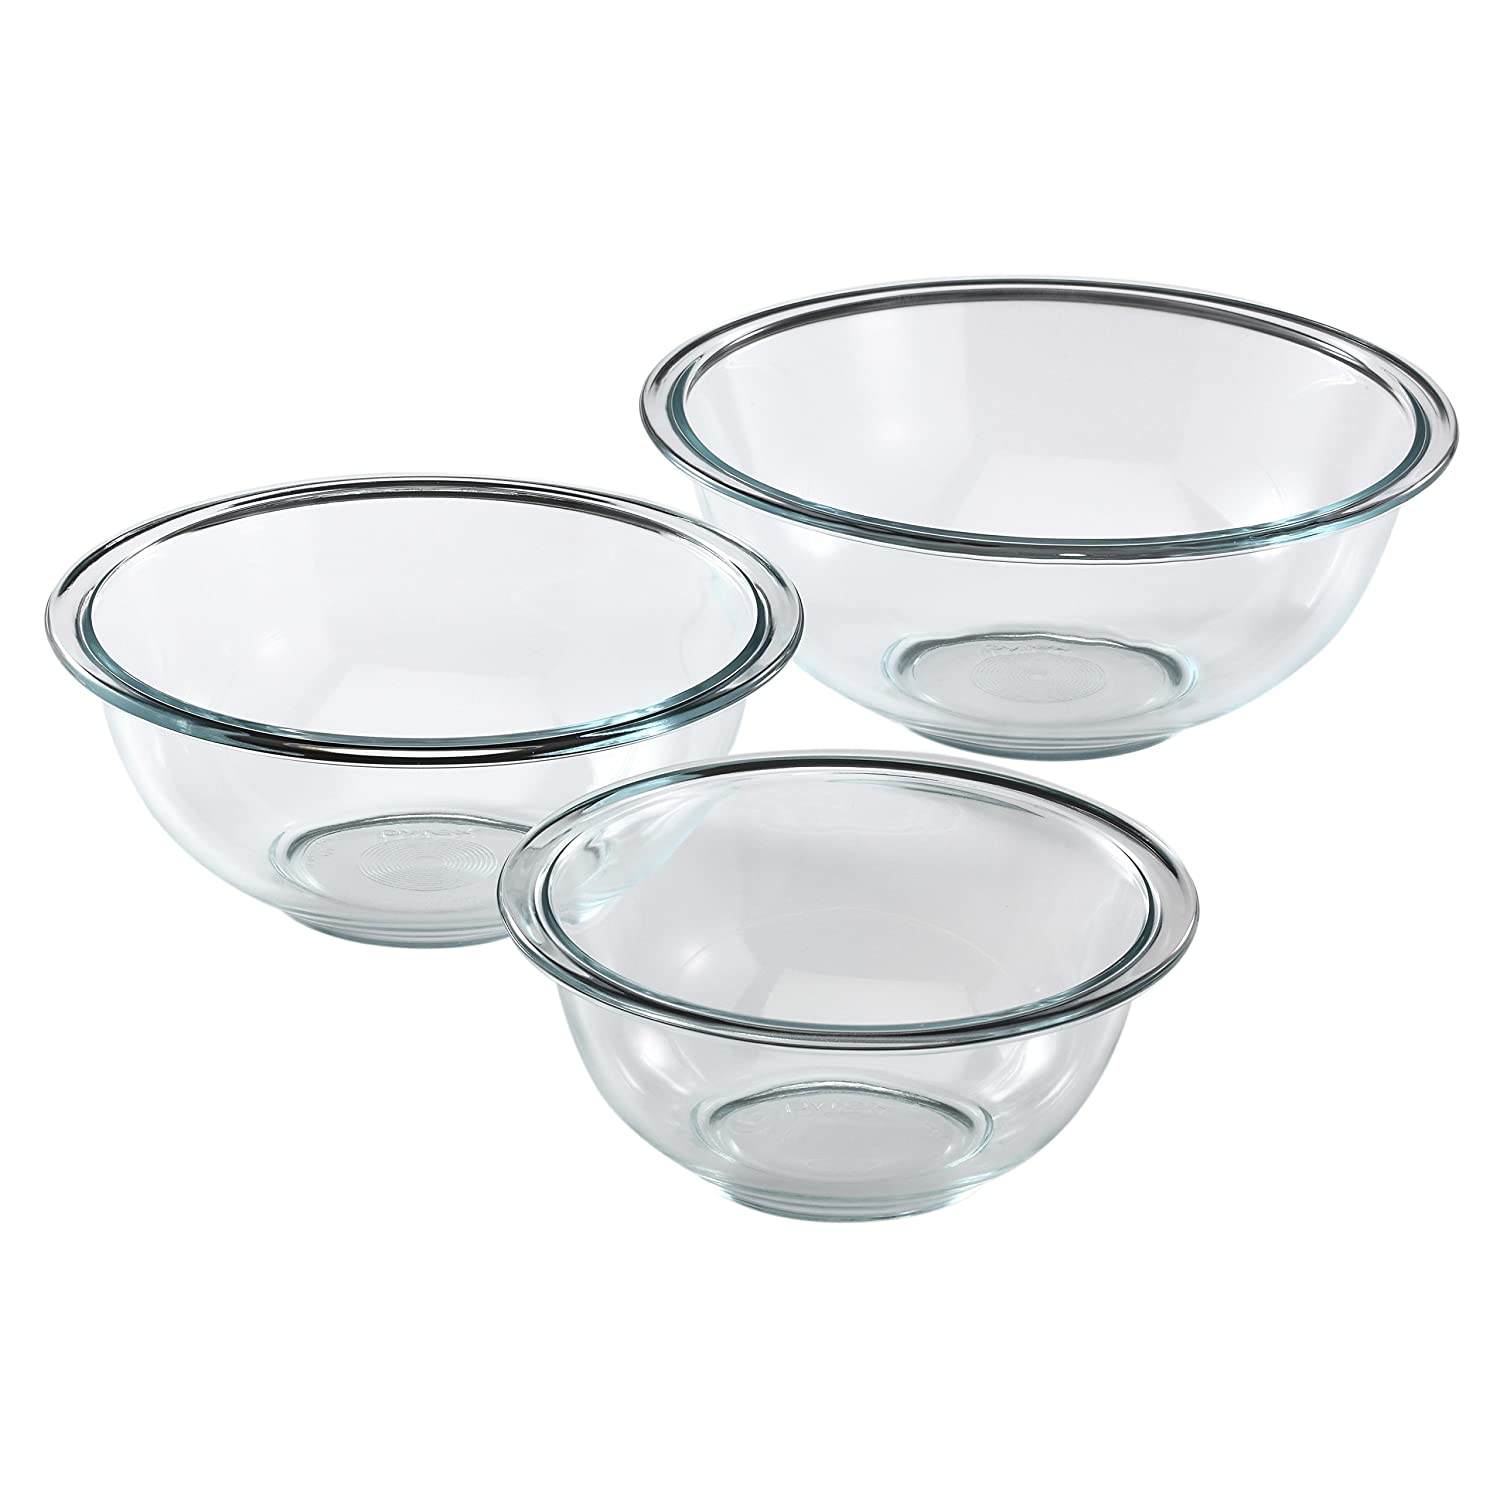 Clear Pyrex Prepware 3-Piece Glass Mixing Bowl Set